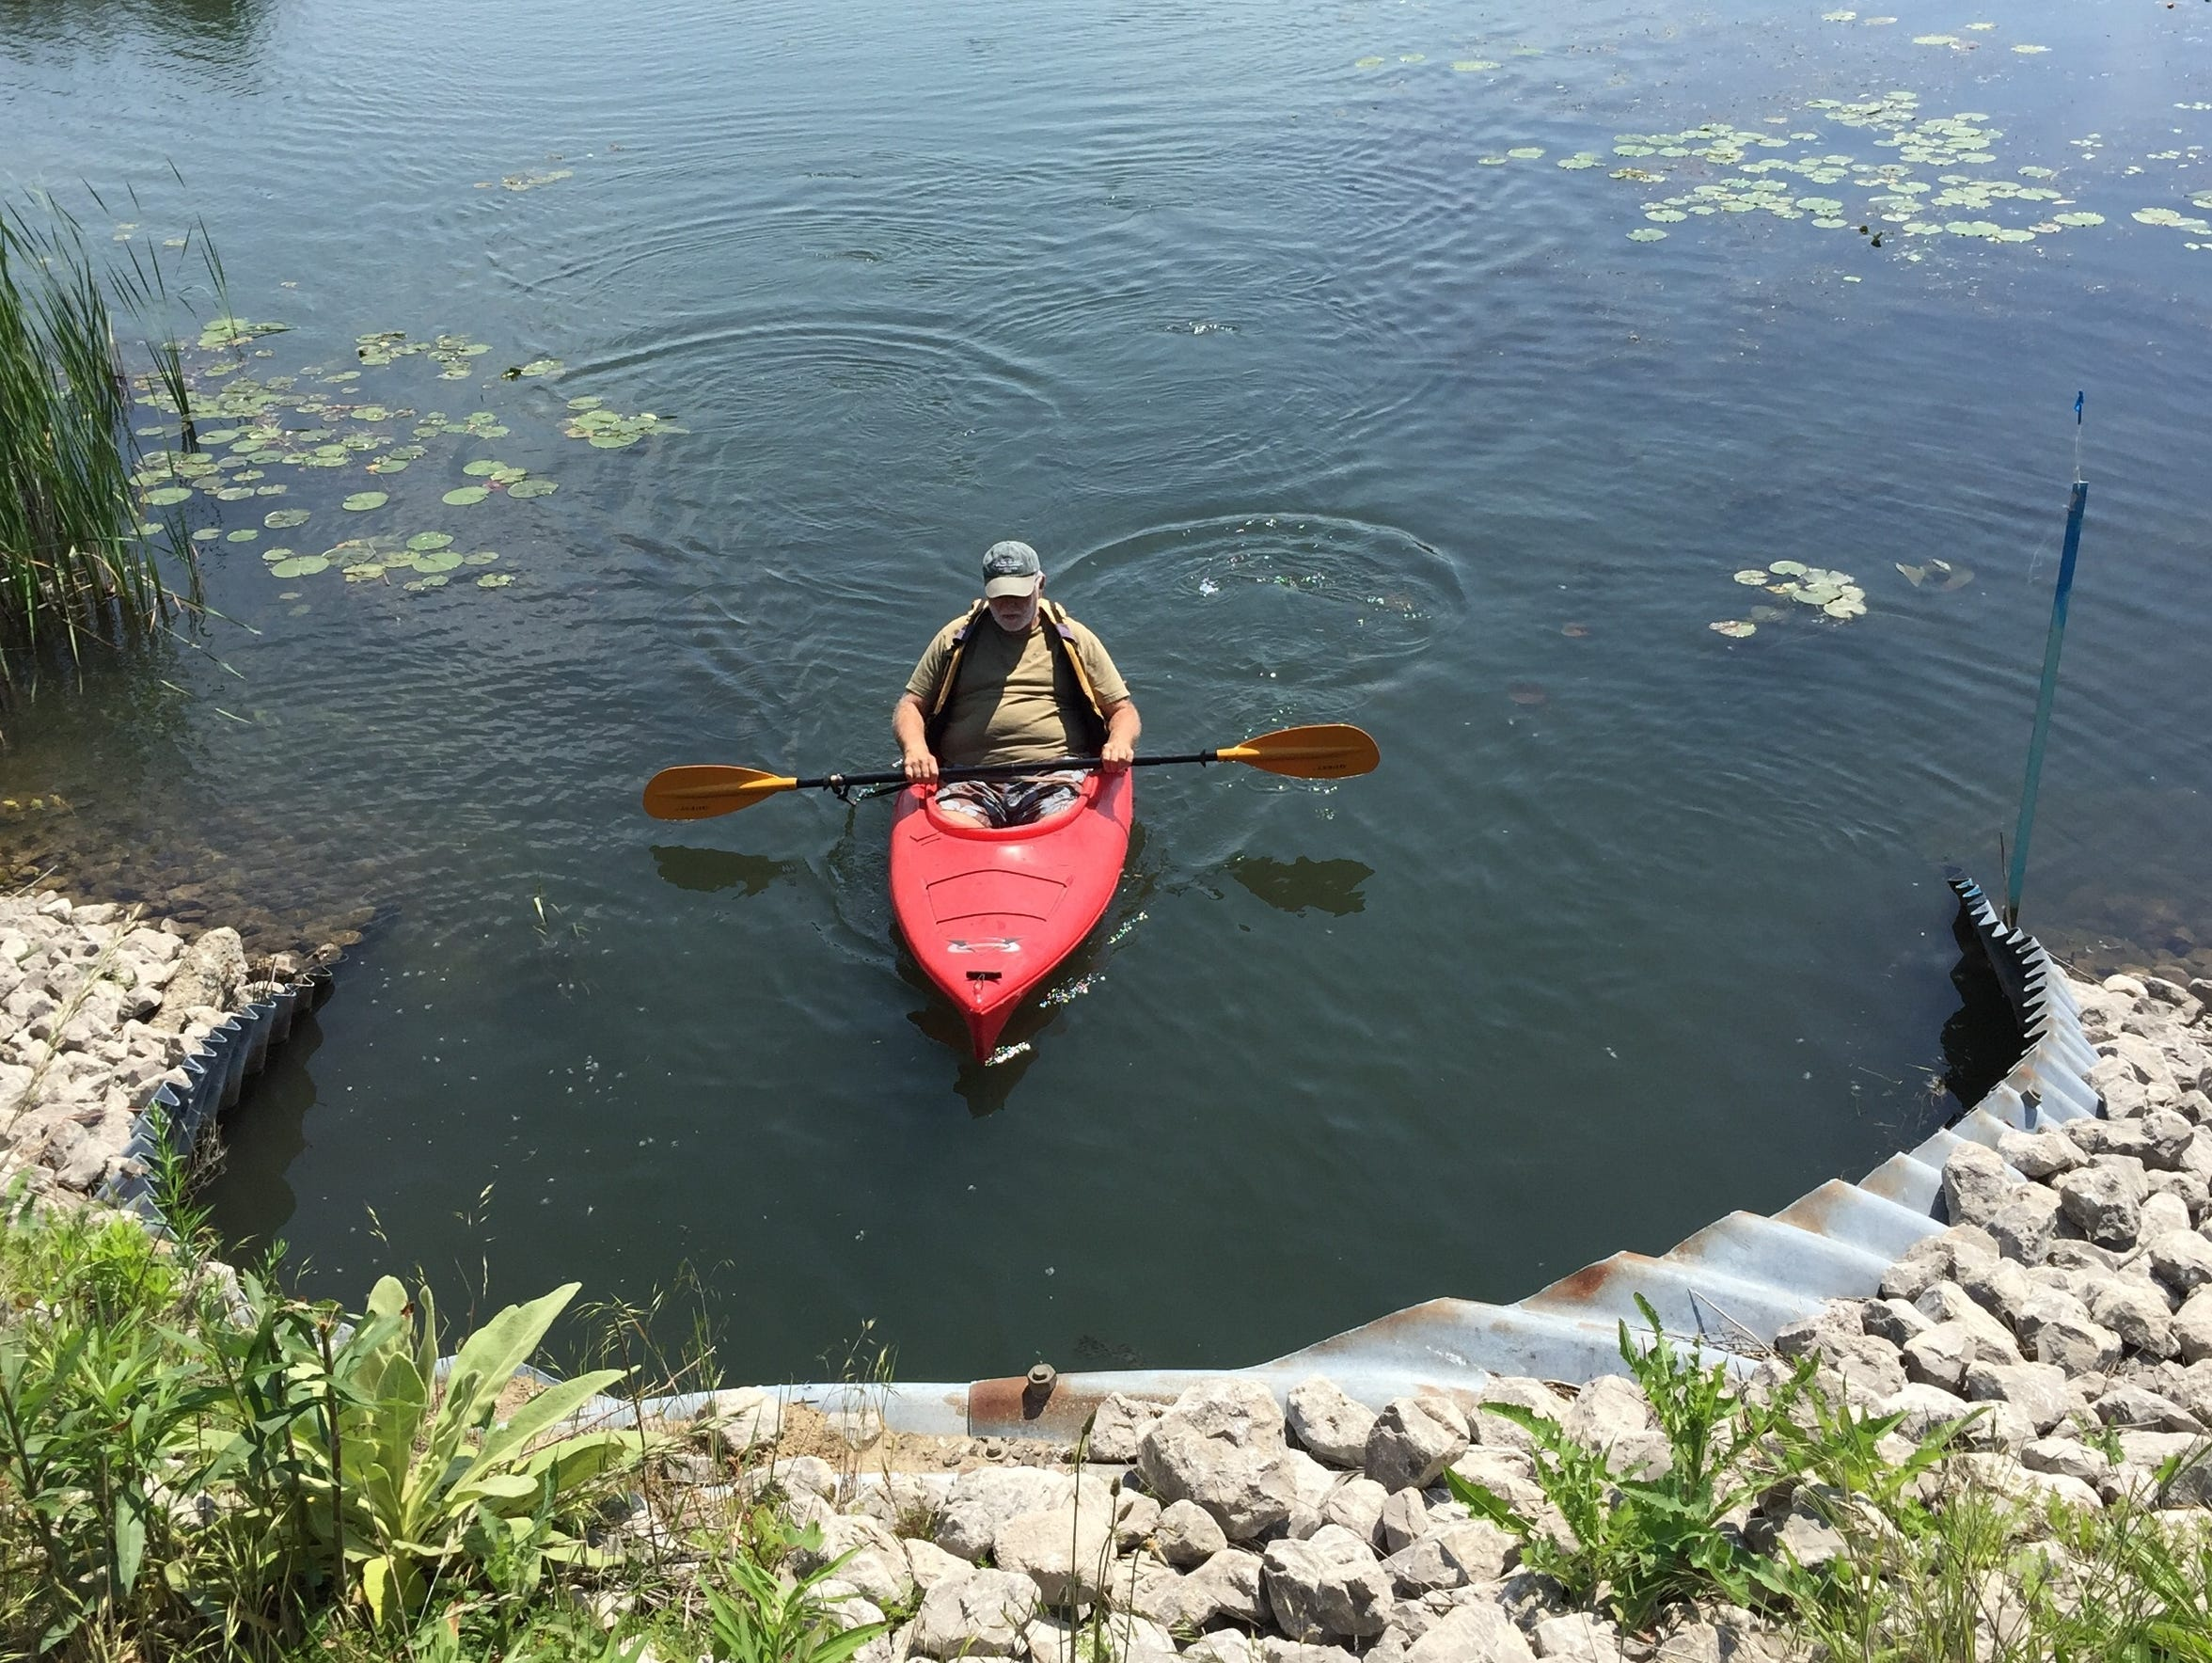 A paddler prepares to enter a culvert carrying the